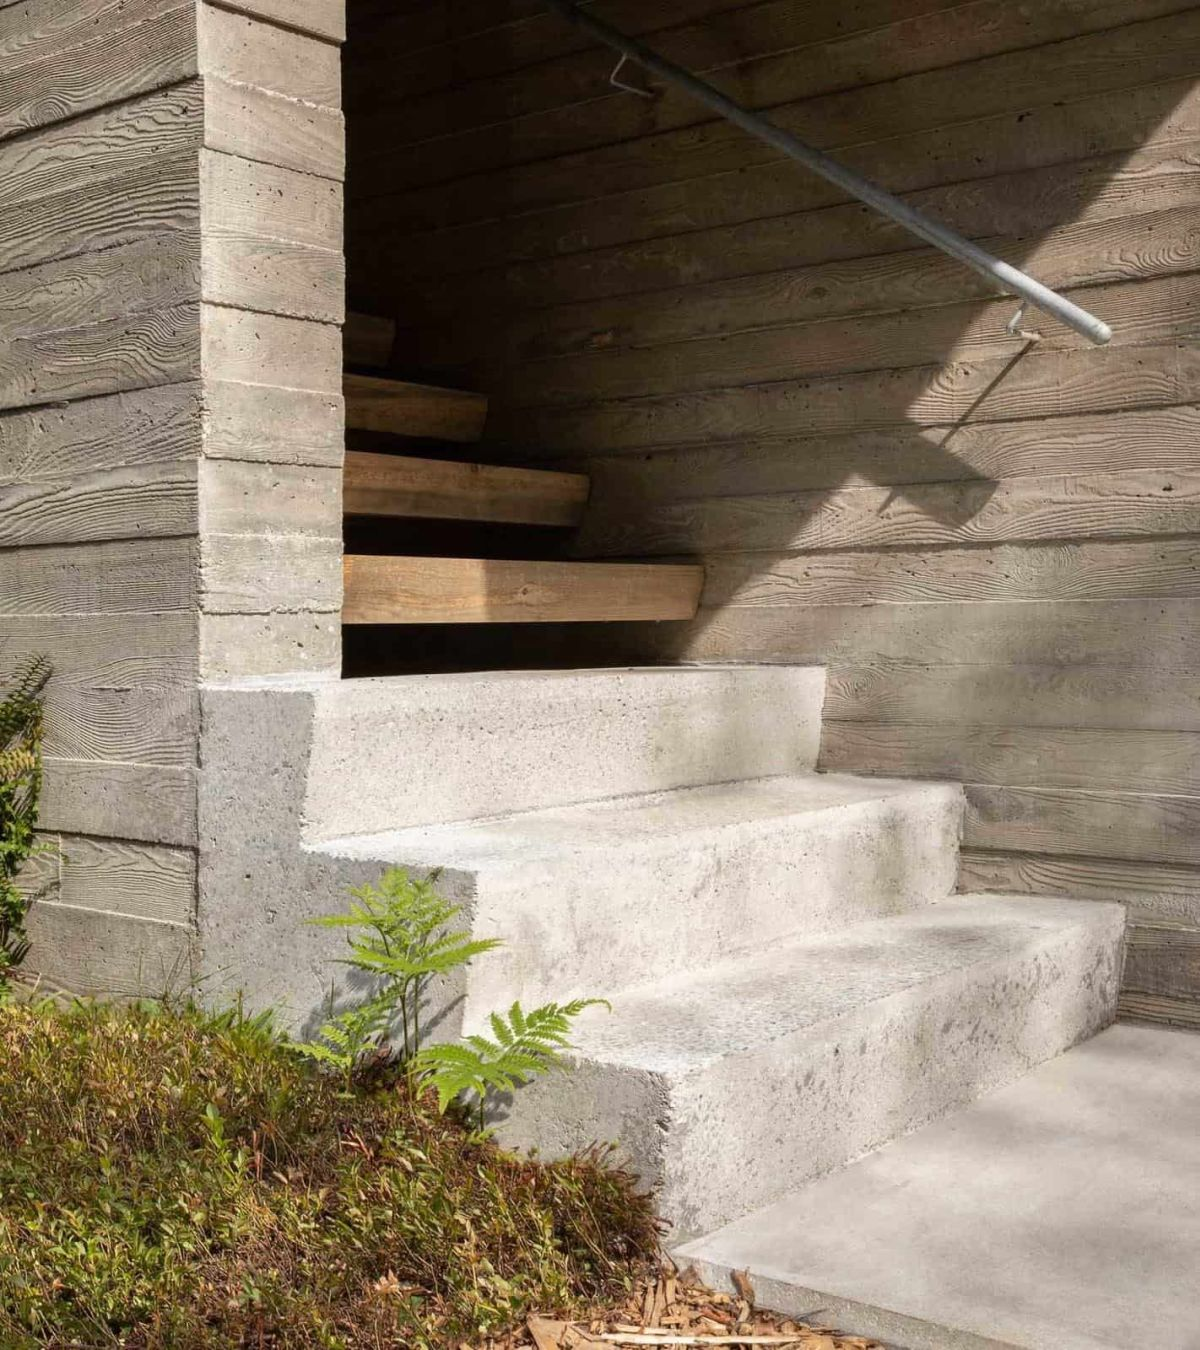 The entrance staircase is built of concrete and wood, with metal railing for a modern feel